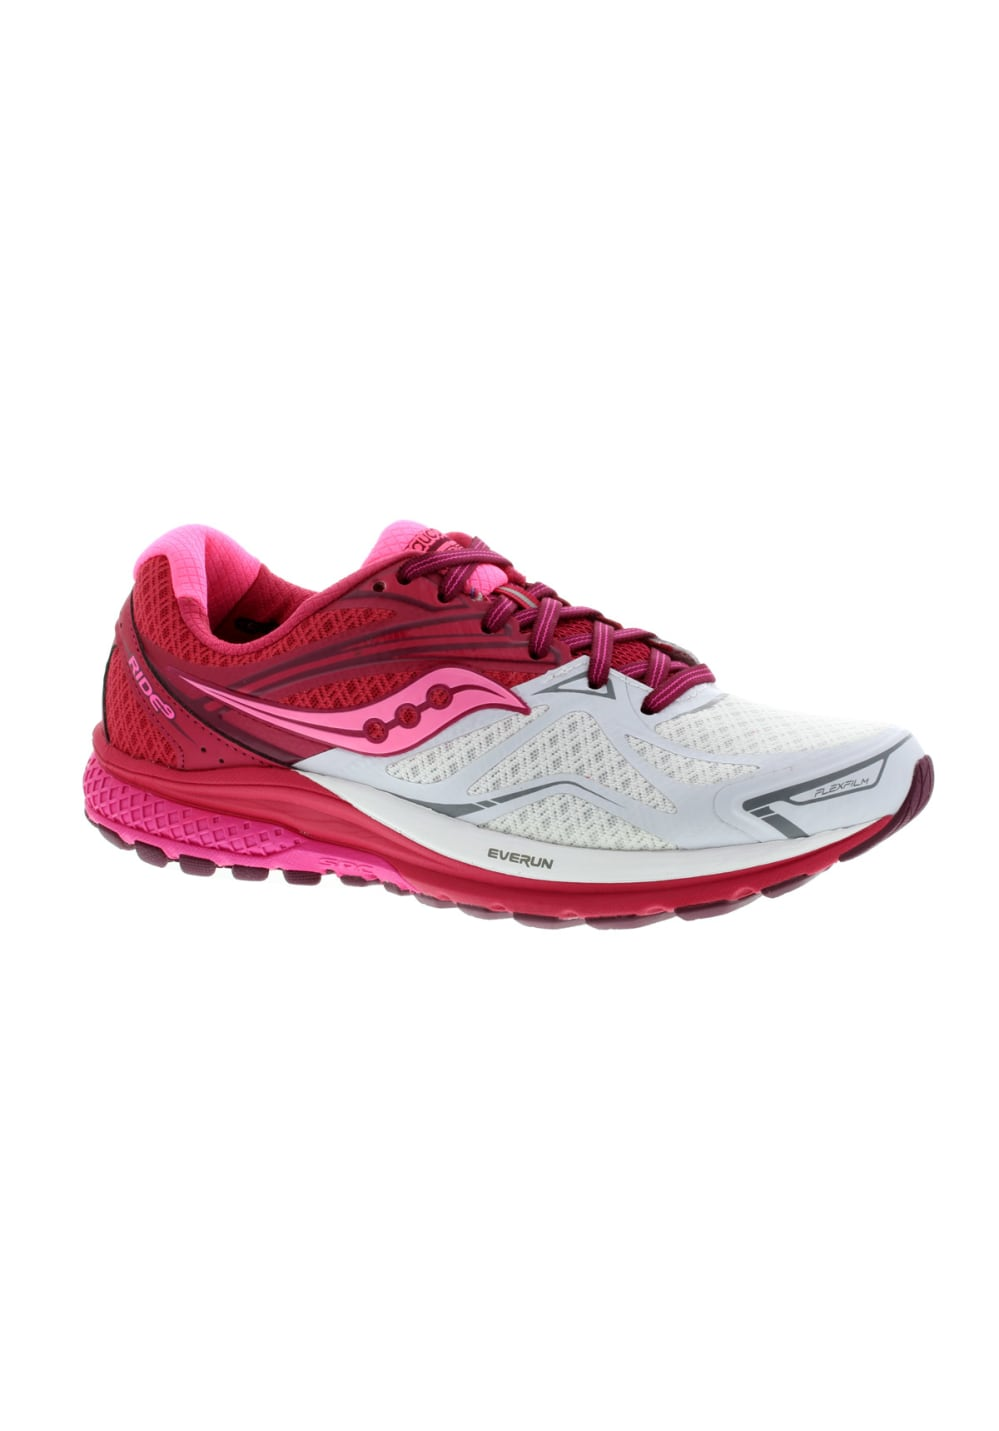 fa393eb03a4b Saucony Ride 9 - Running shoes for Women - Red